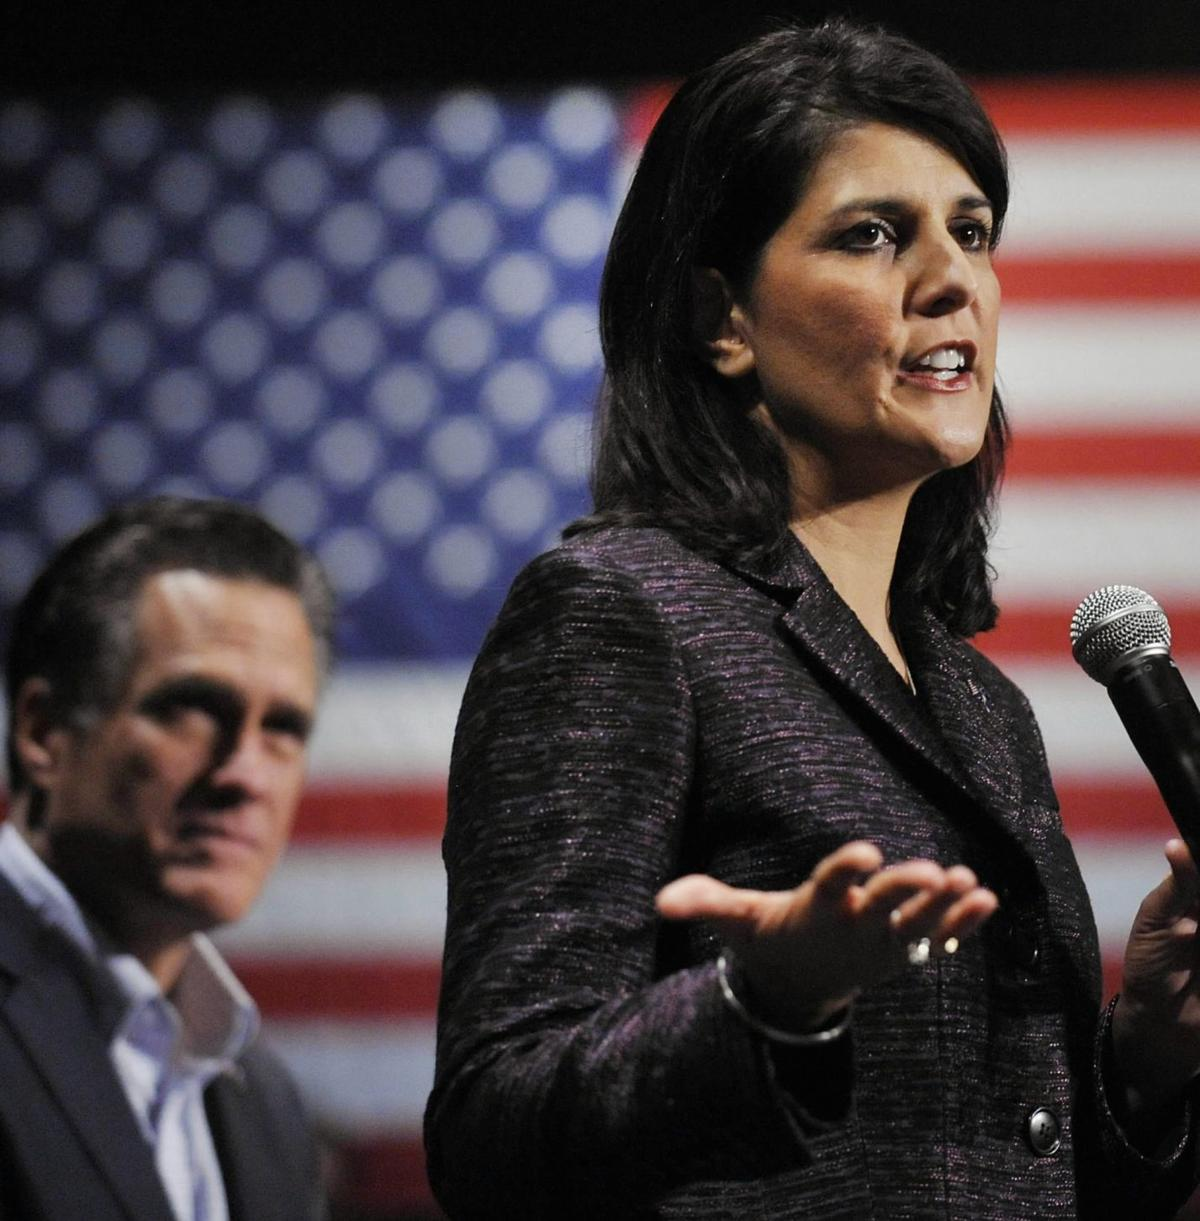 Winthrop Poll: Voters evenly divided on Gov. Haley's performance